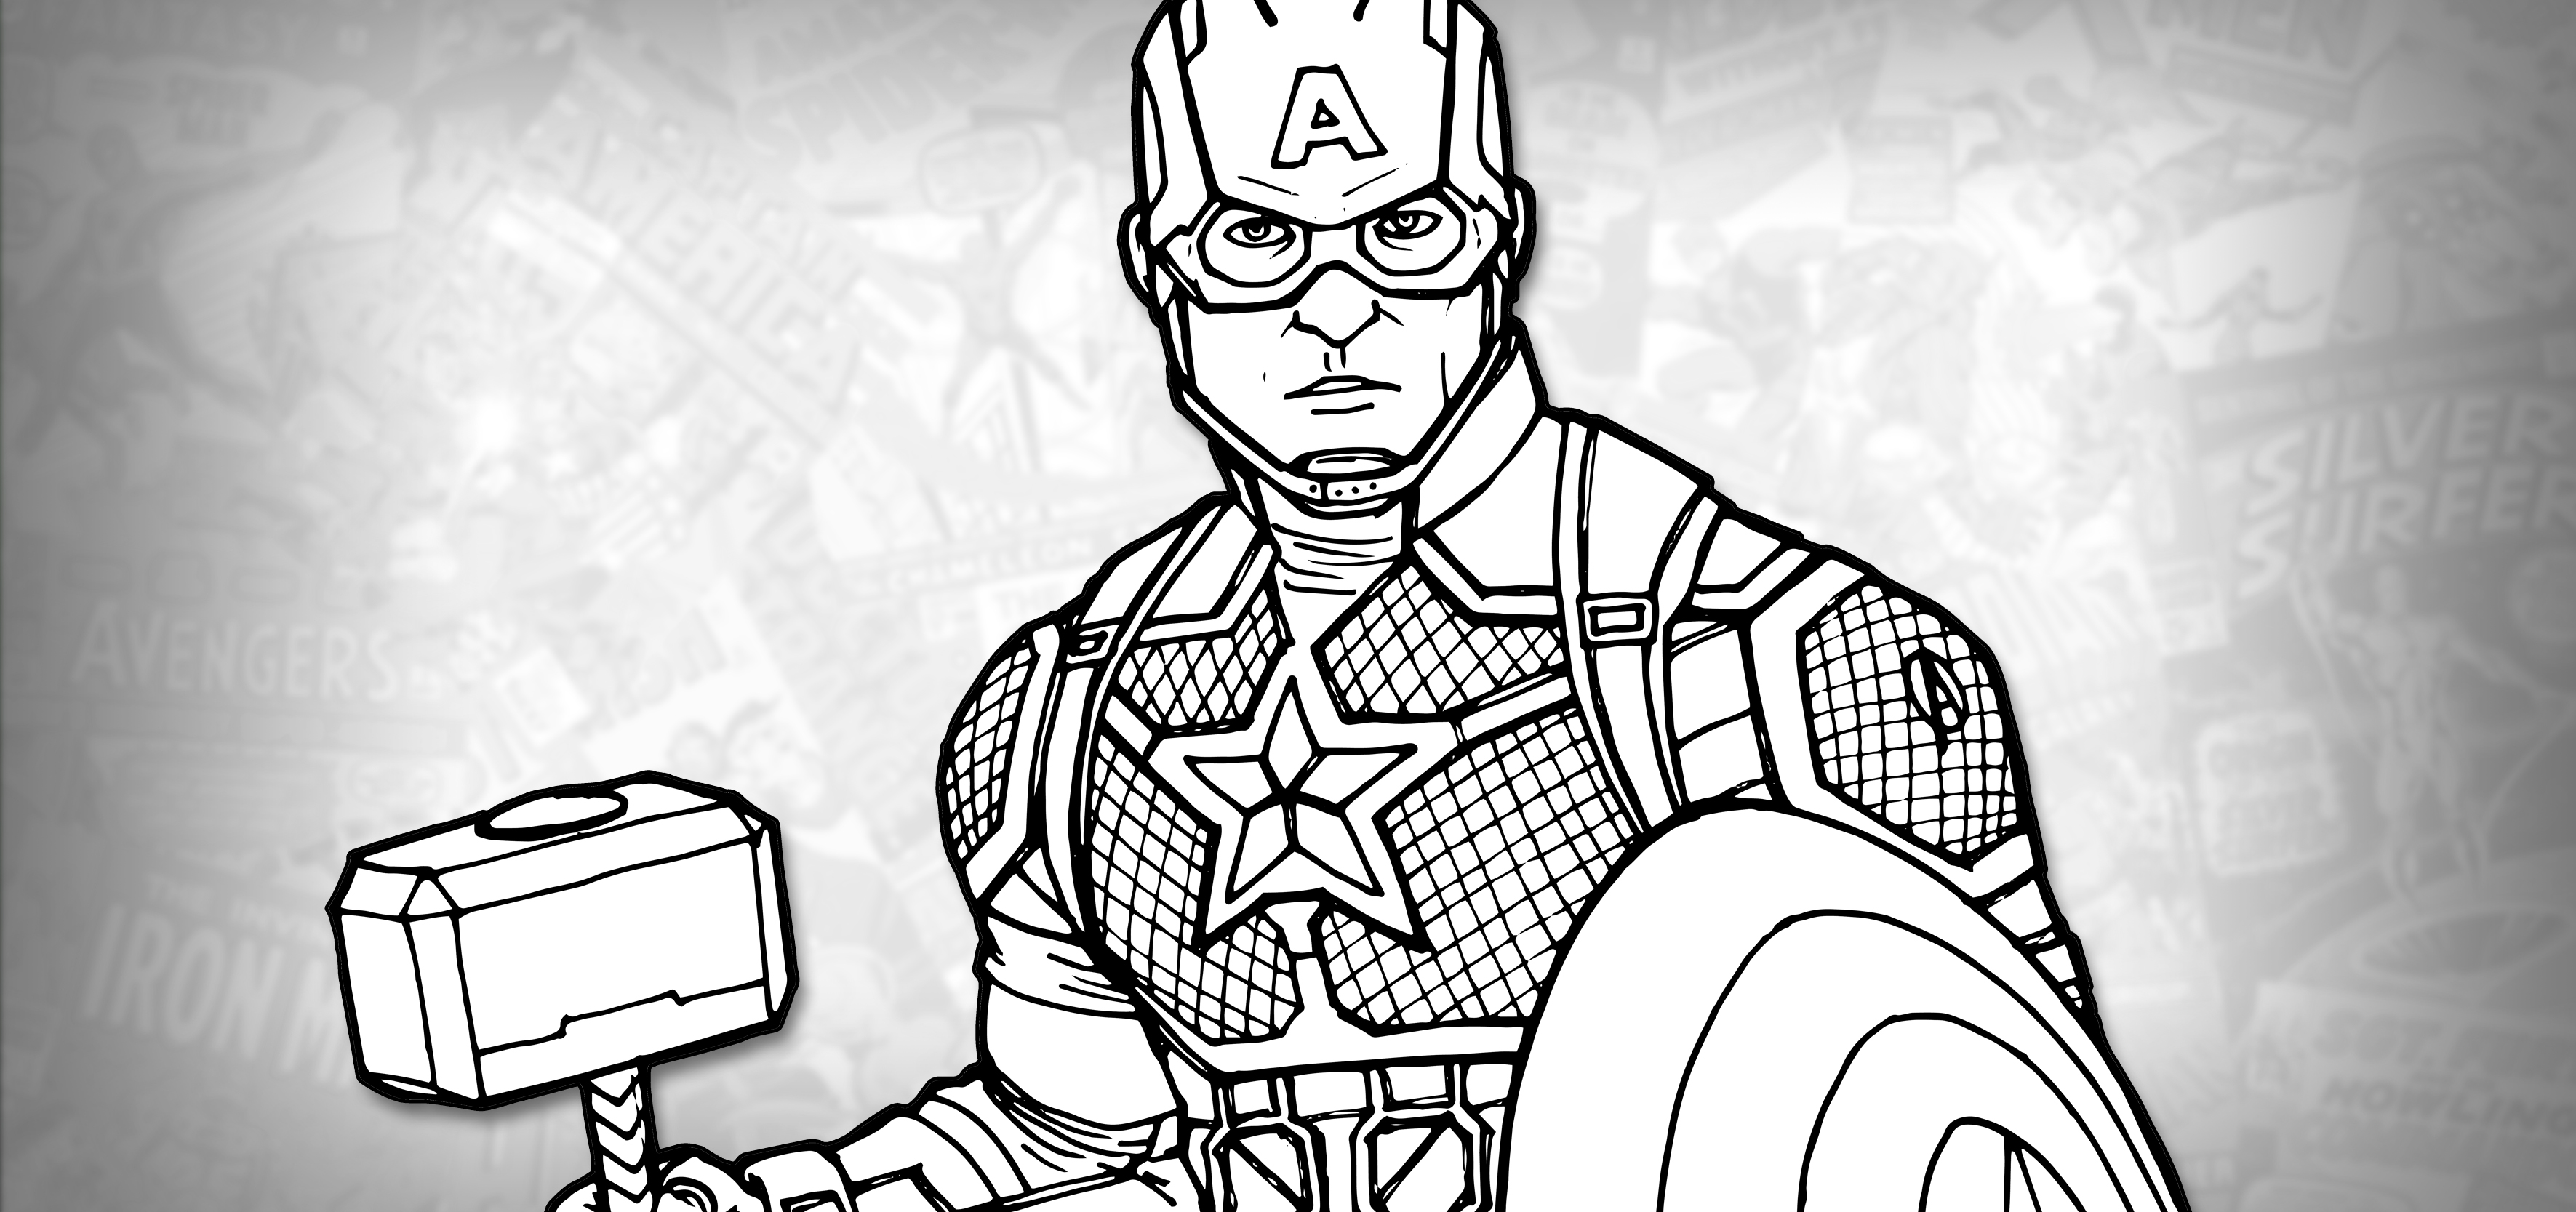 avengers drawing pictures avengers infinity war by daniel jeffries on deviantart avengers pictures drawing